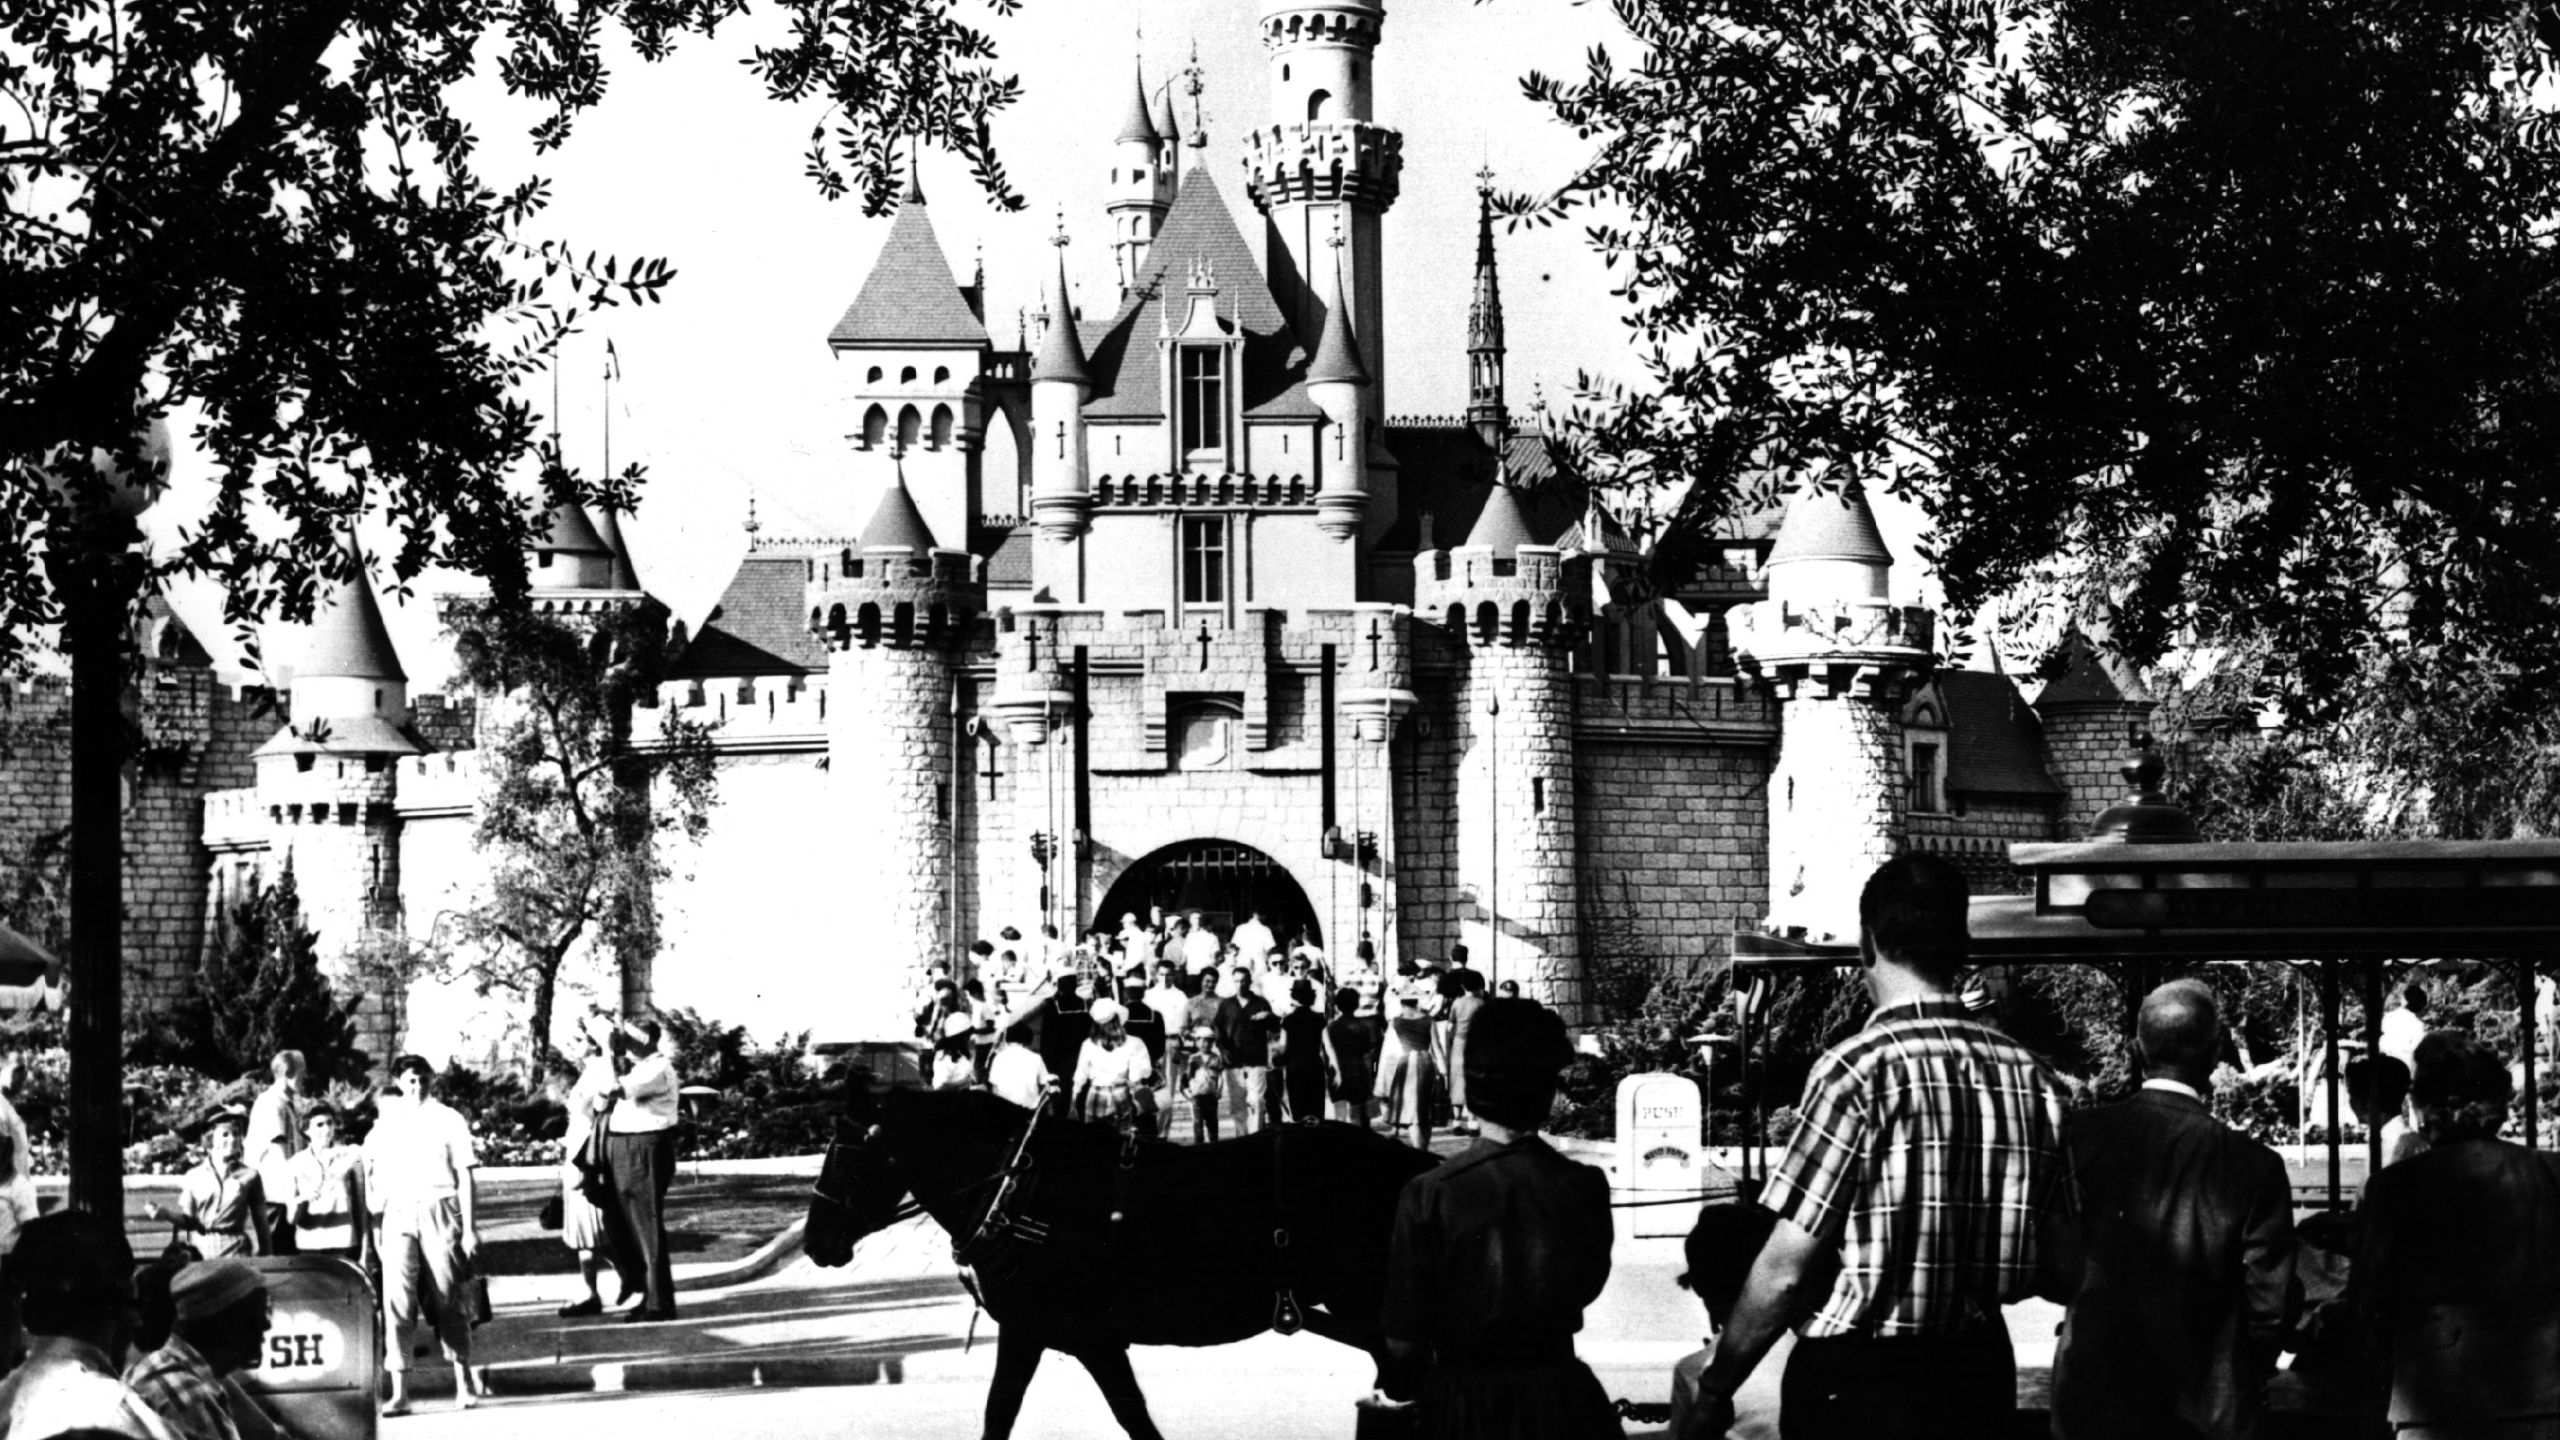 """Tourists visiting the """"Sleeping Beauty Castle"""" at Disneyland in 1960. (Keystone/Getty Images)"""